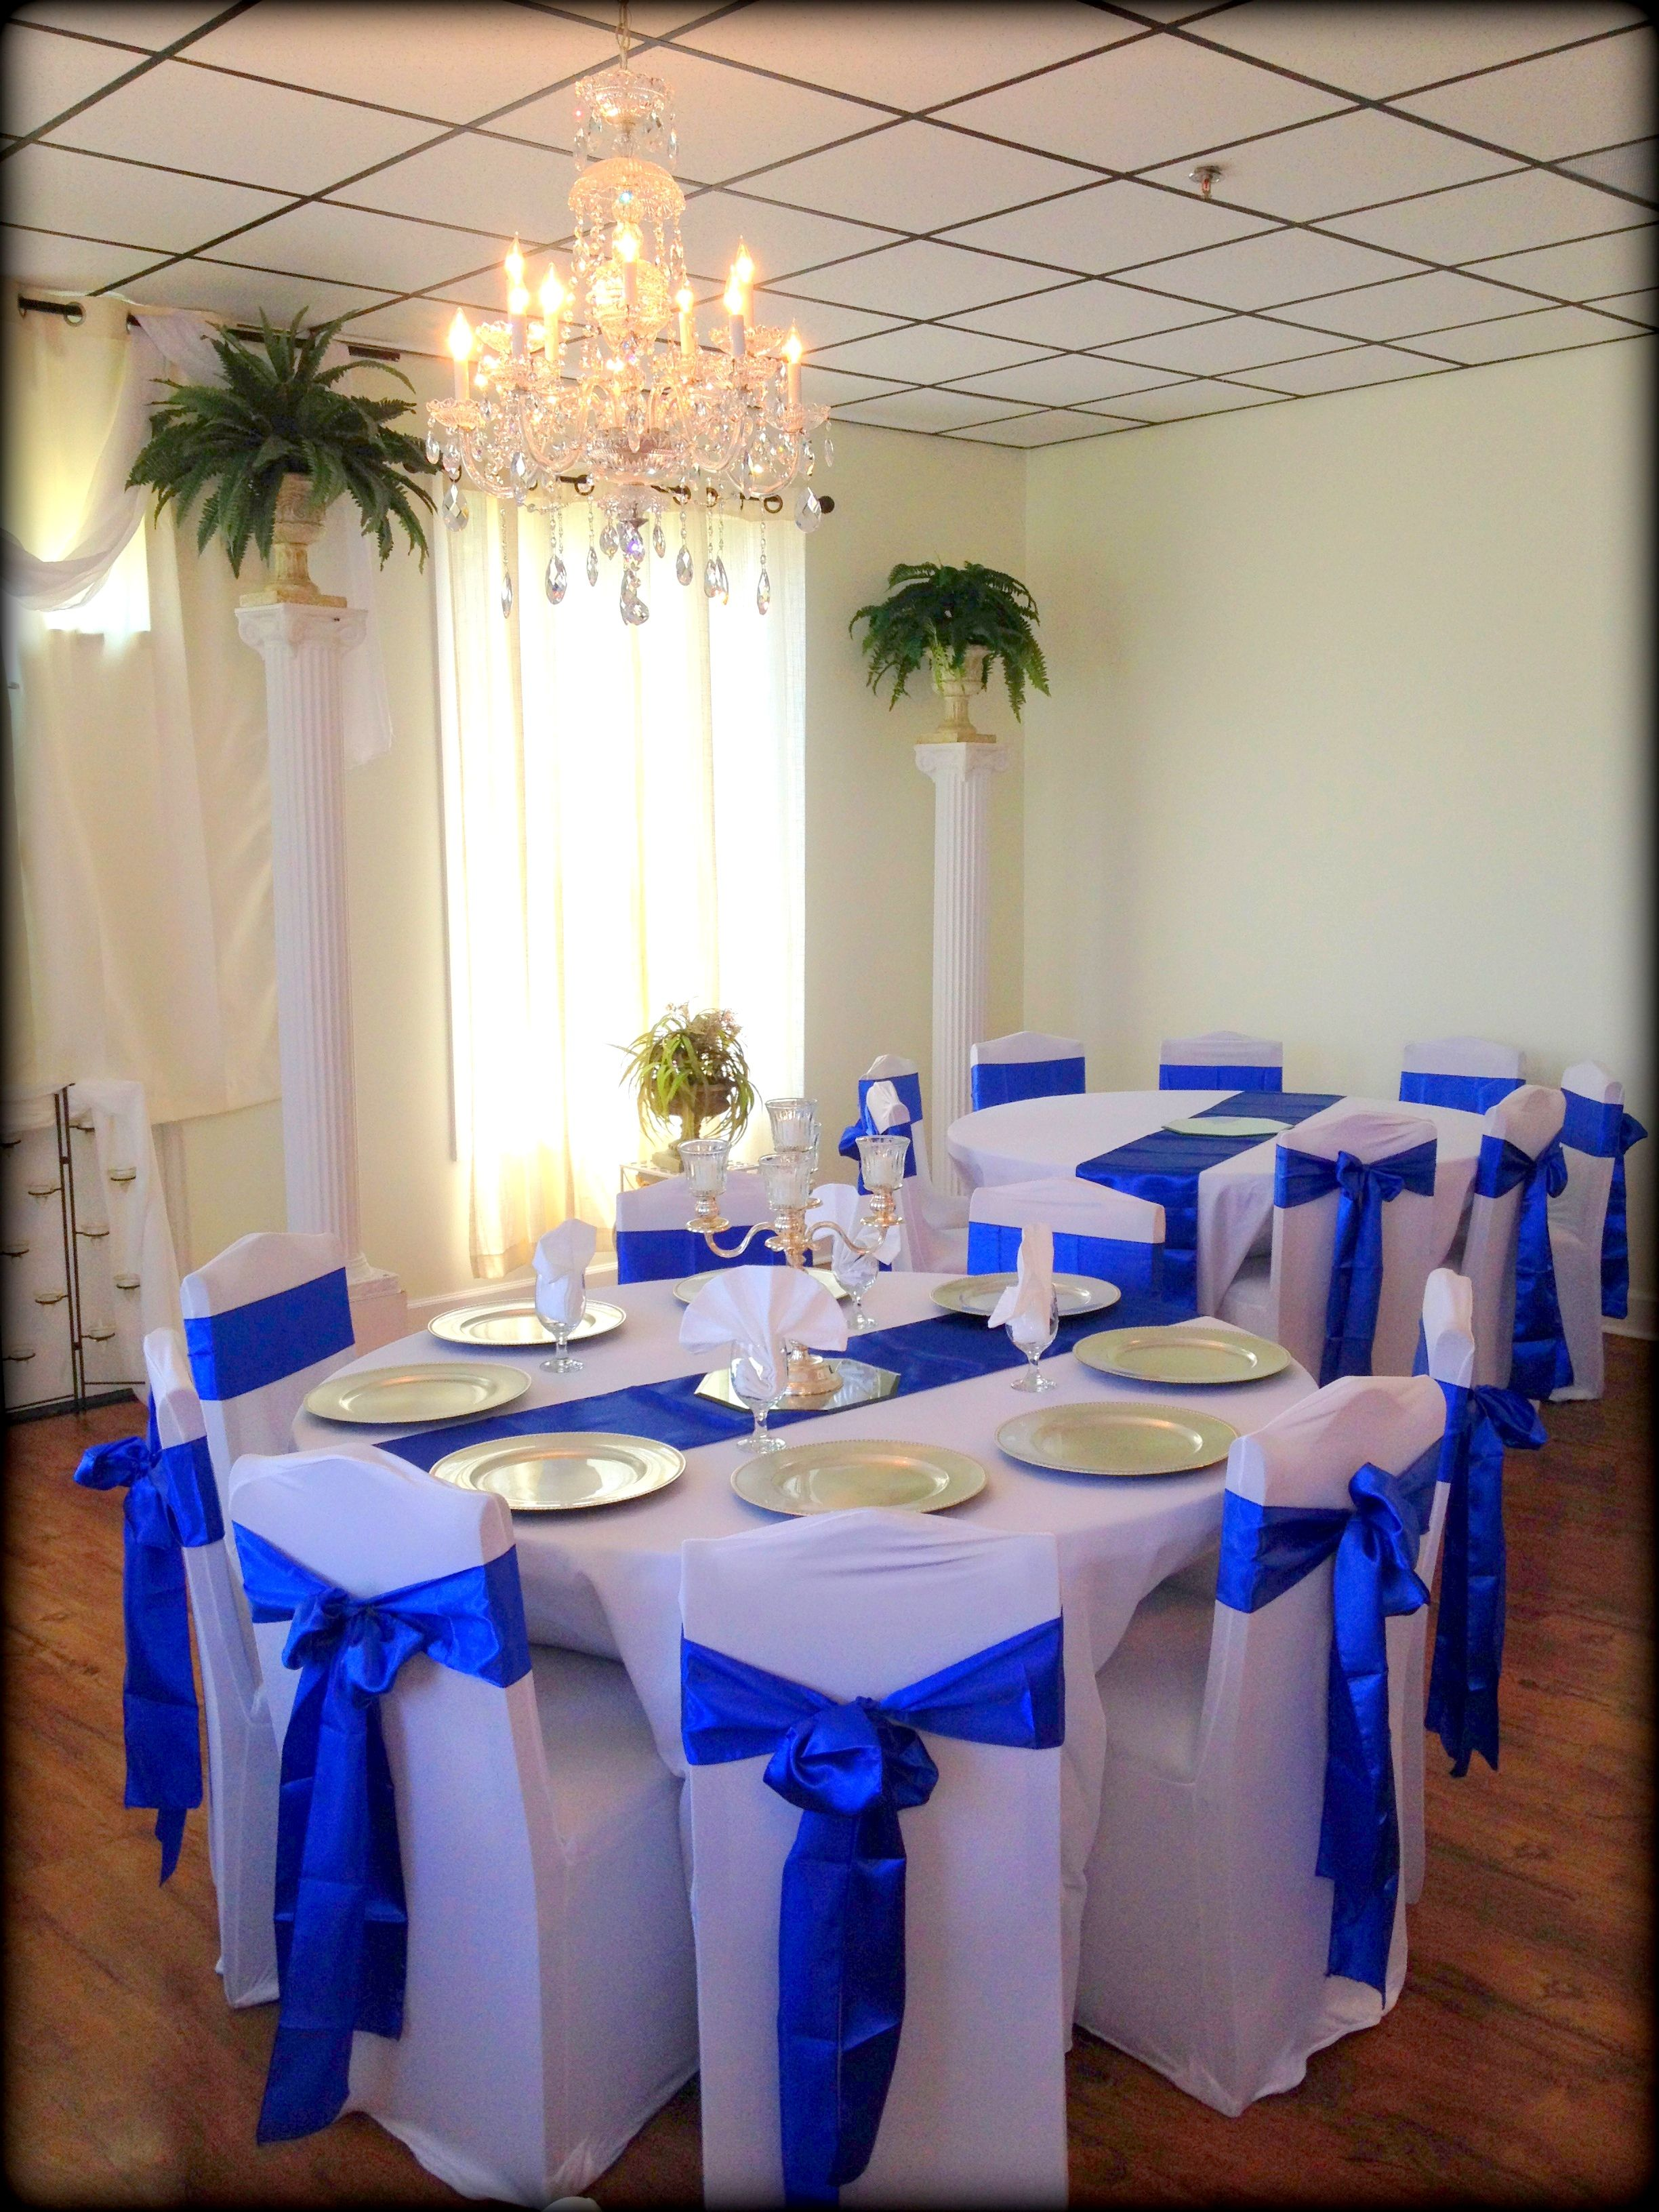 Wedding decorations with royal blue  Royal Blue wedding decor  Ambientacion  Pinterest  Royal blue